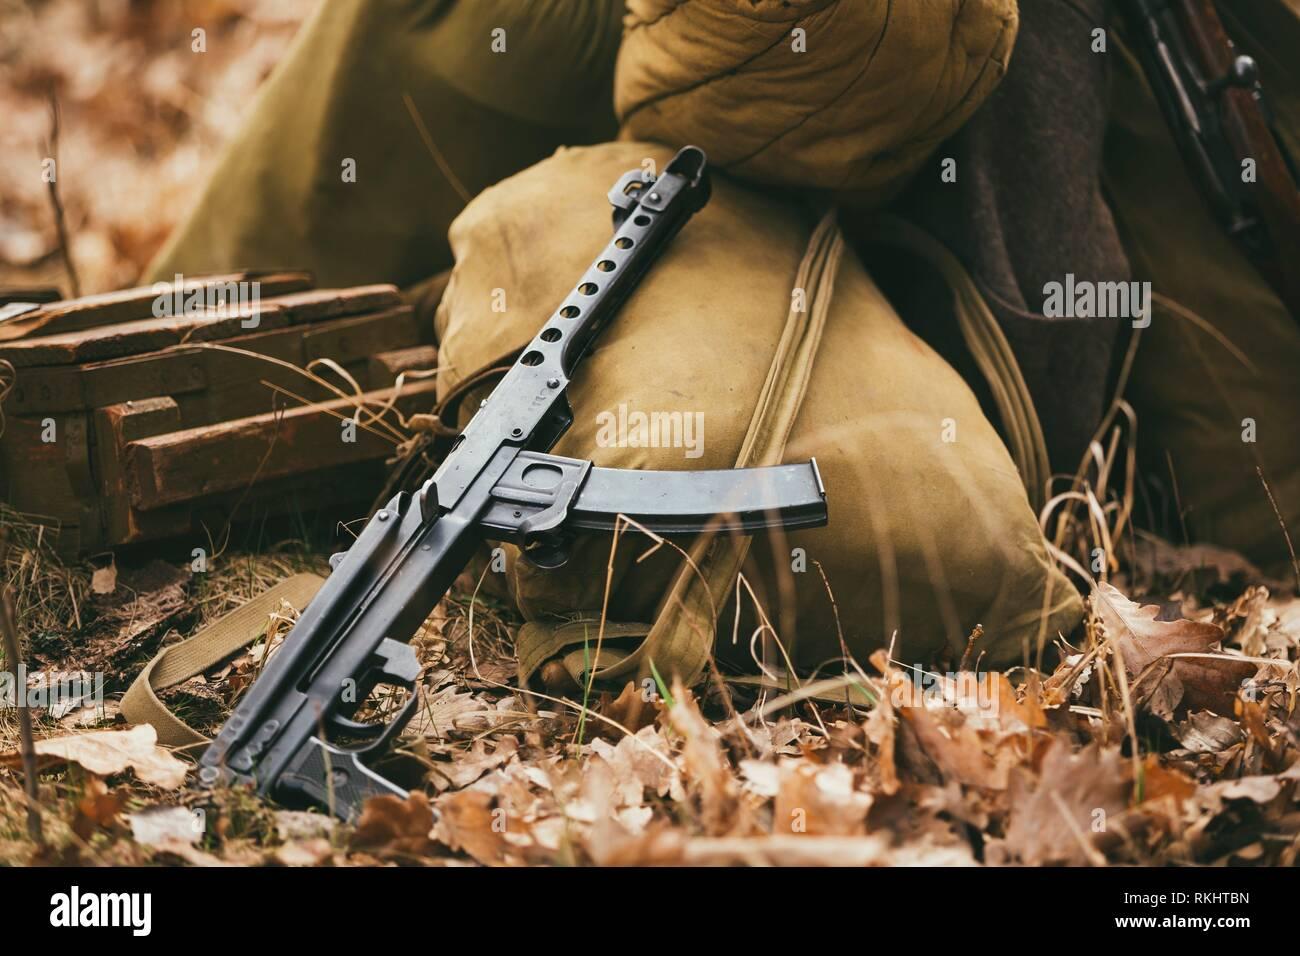 Pps 43 Stock Photos & Pps 43 Stock Images - Alamy